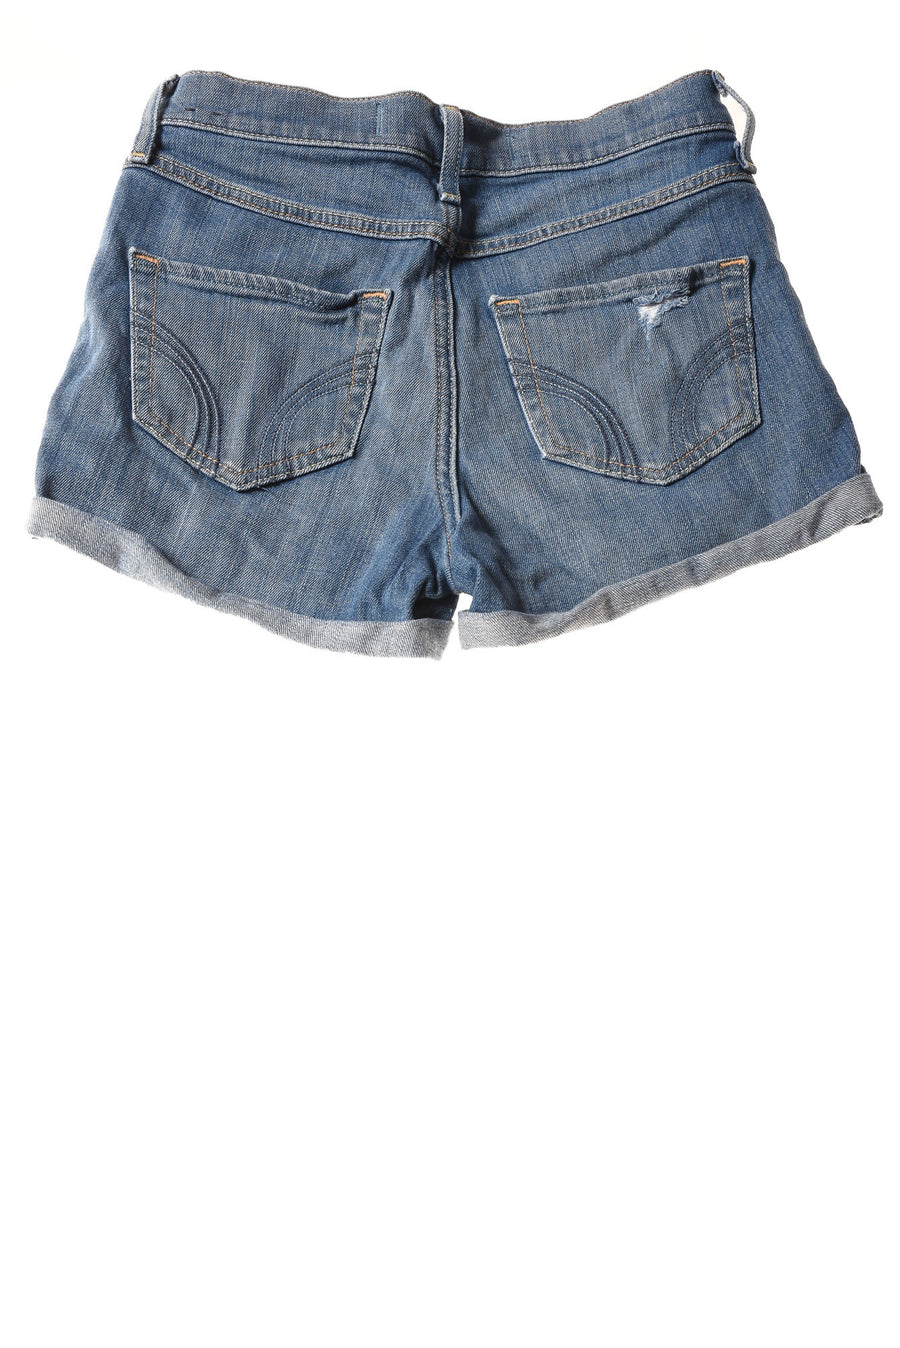 USED Hollister Women's Shorts 0 Blue